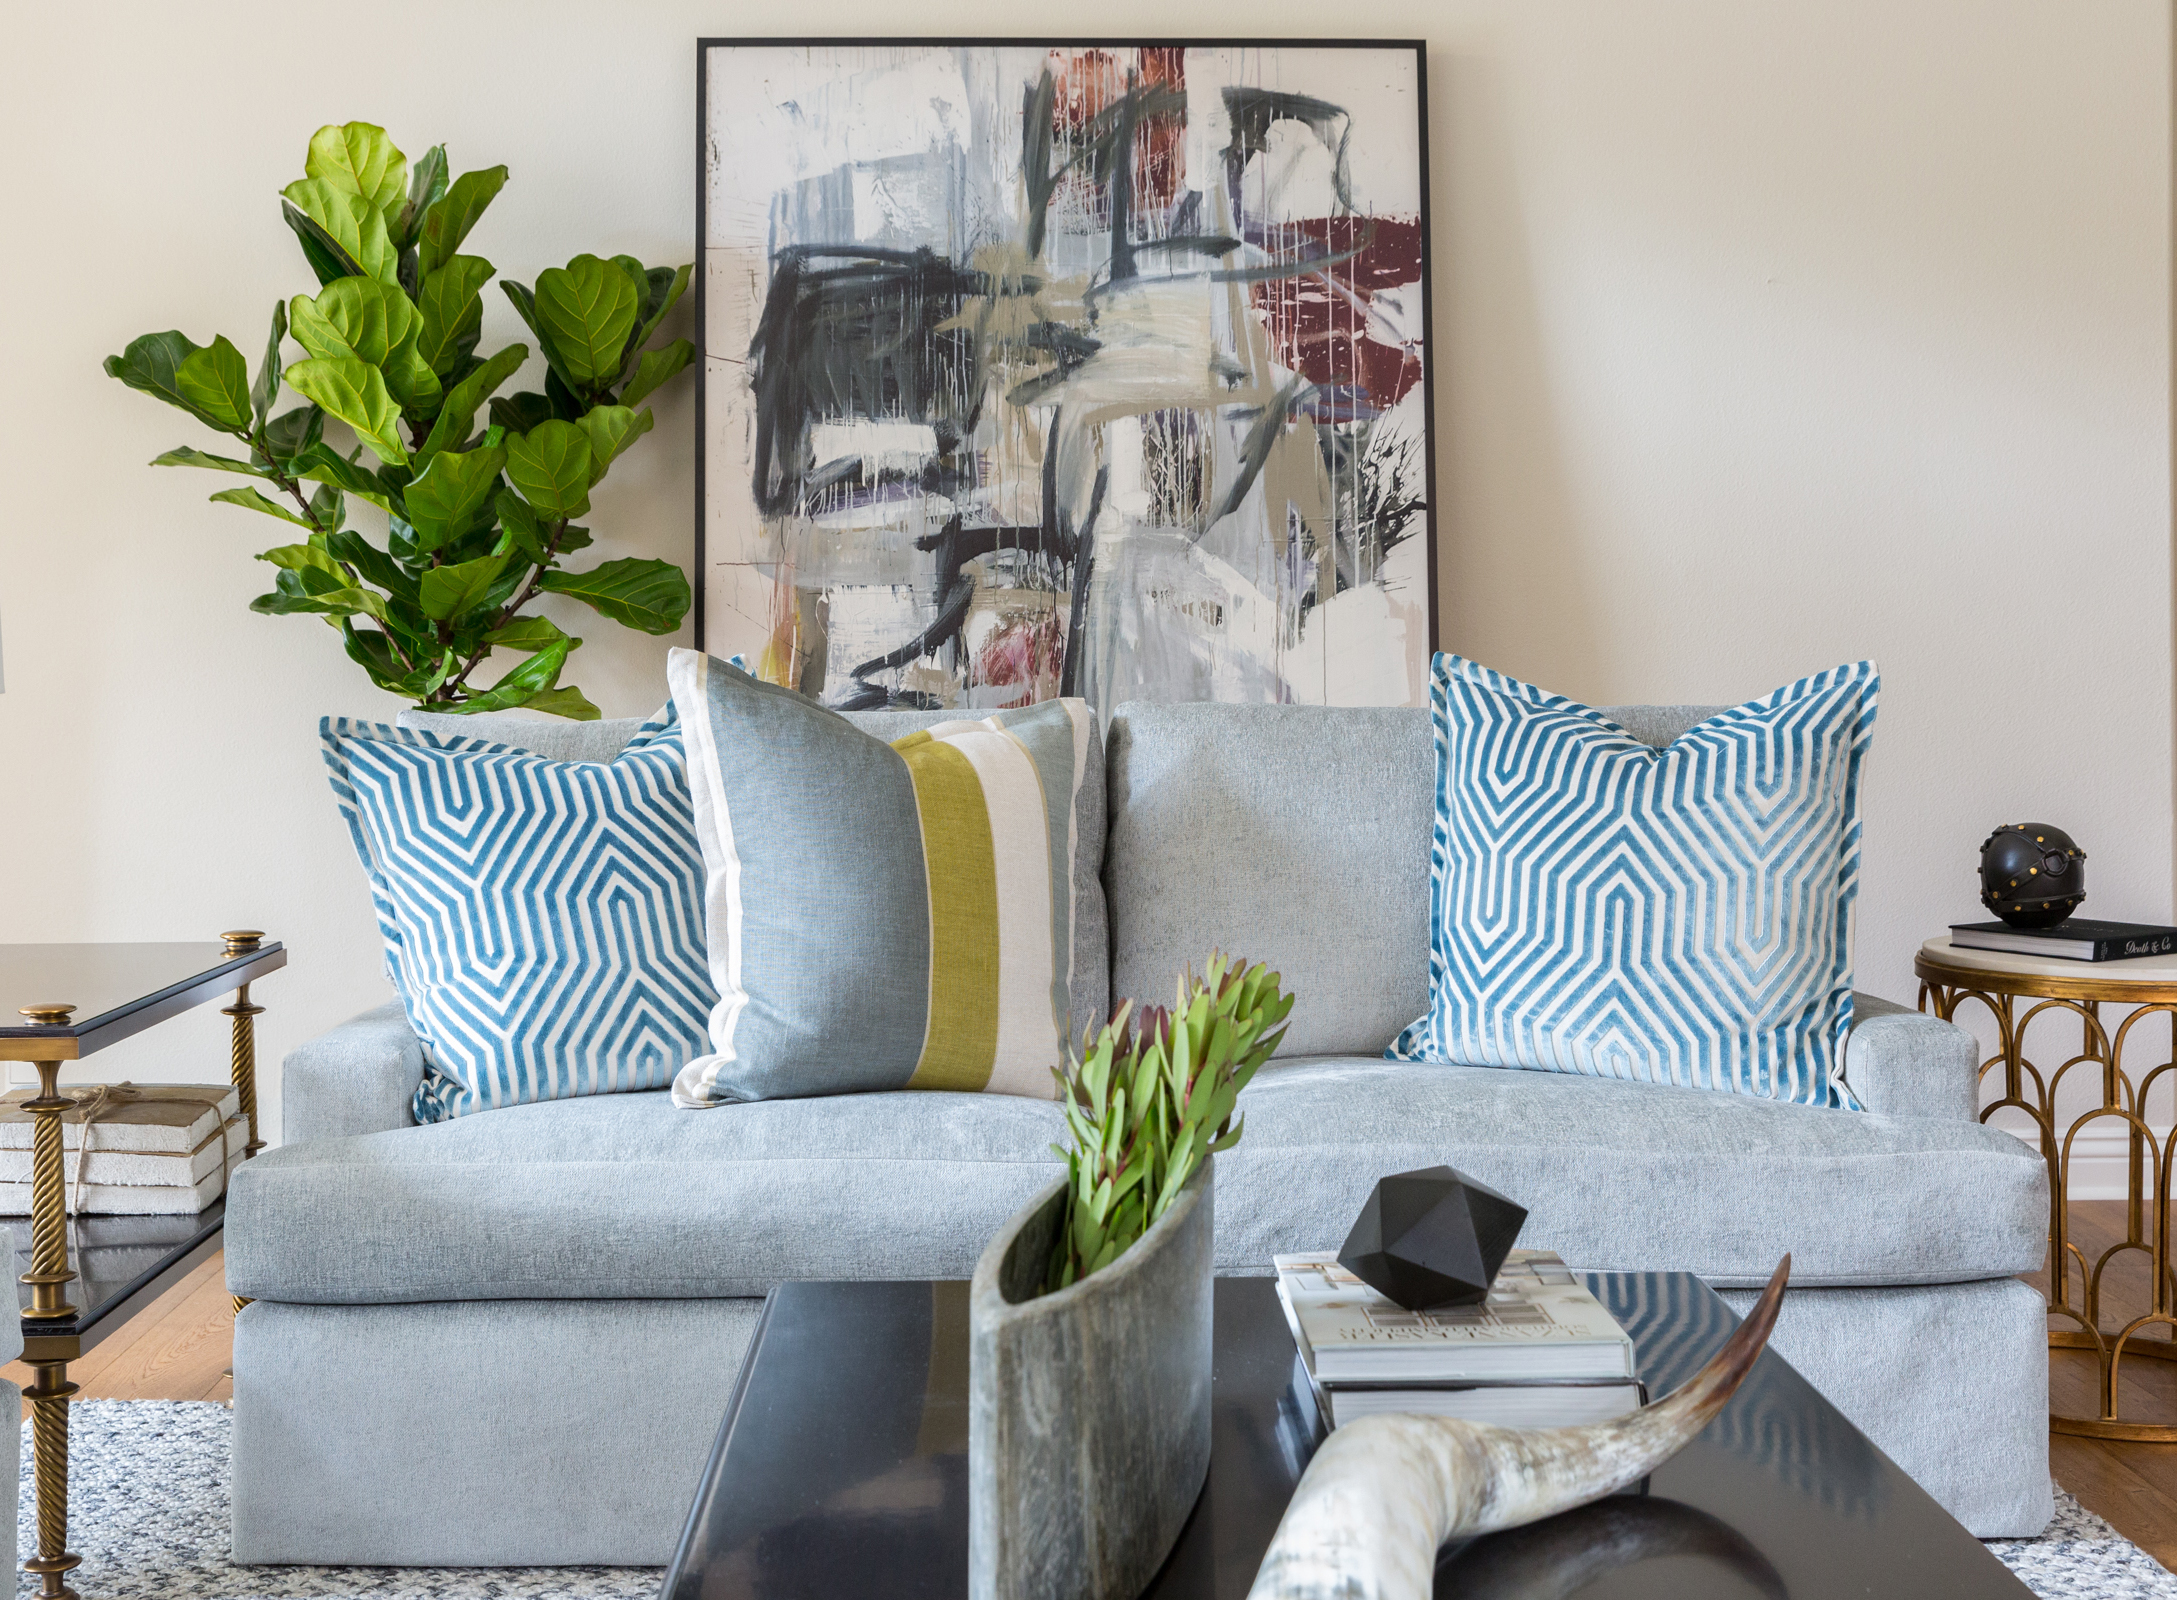 Our clients weren't afraid to go bold in their fun and funky family room!